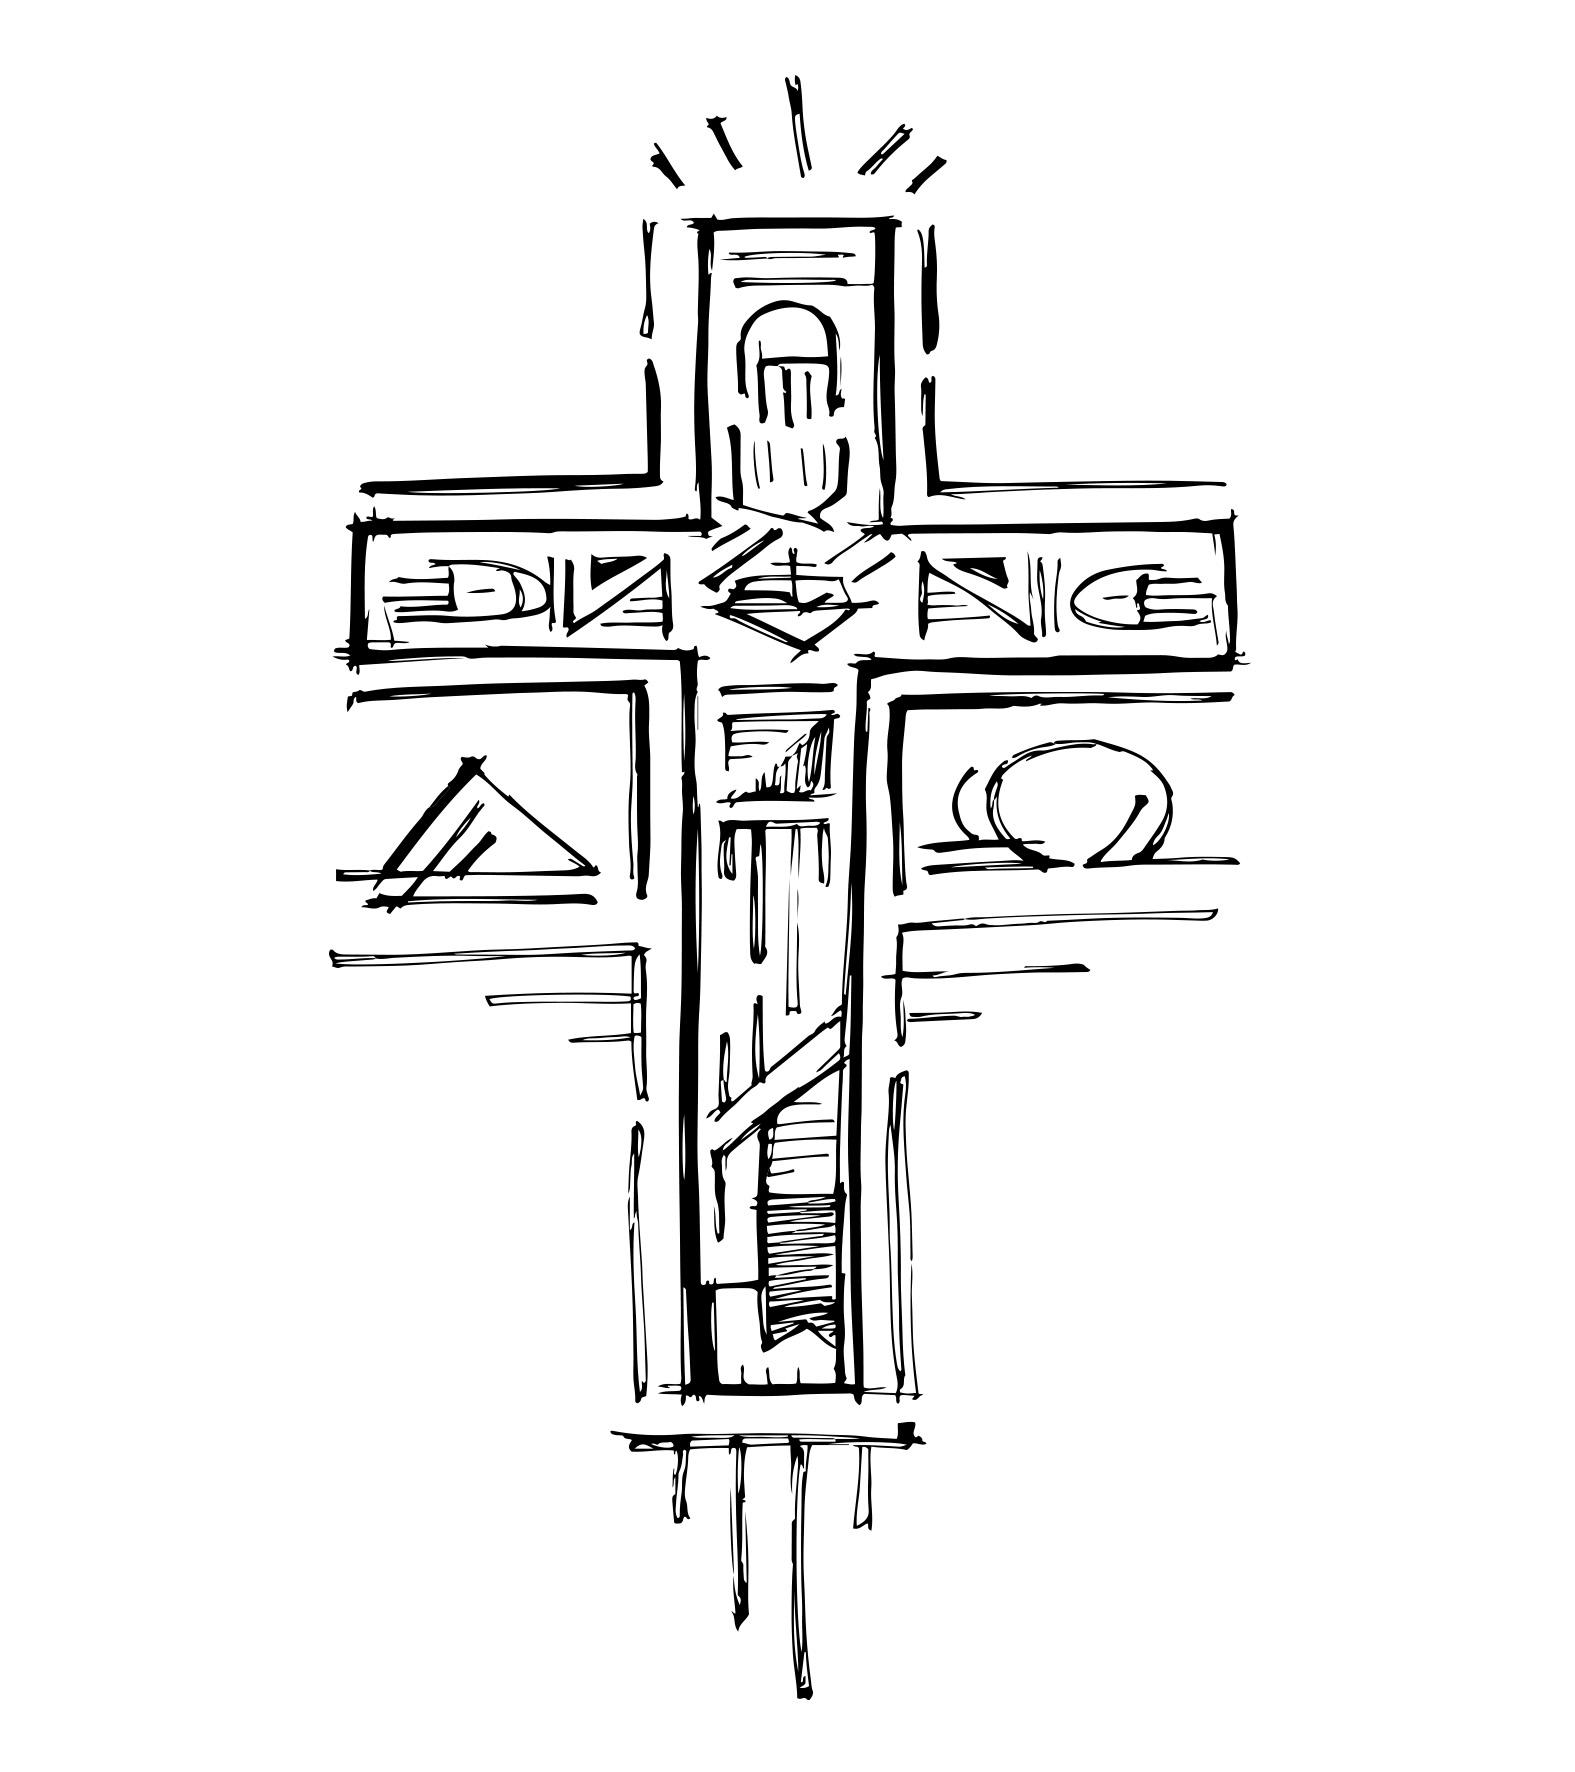 Cruz Alfa y Omega dibujo / Alpha y omega cross drawing